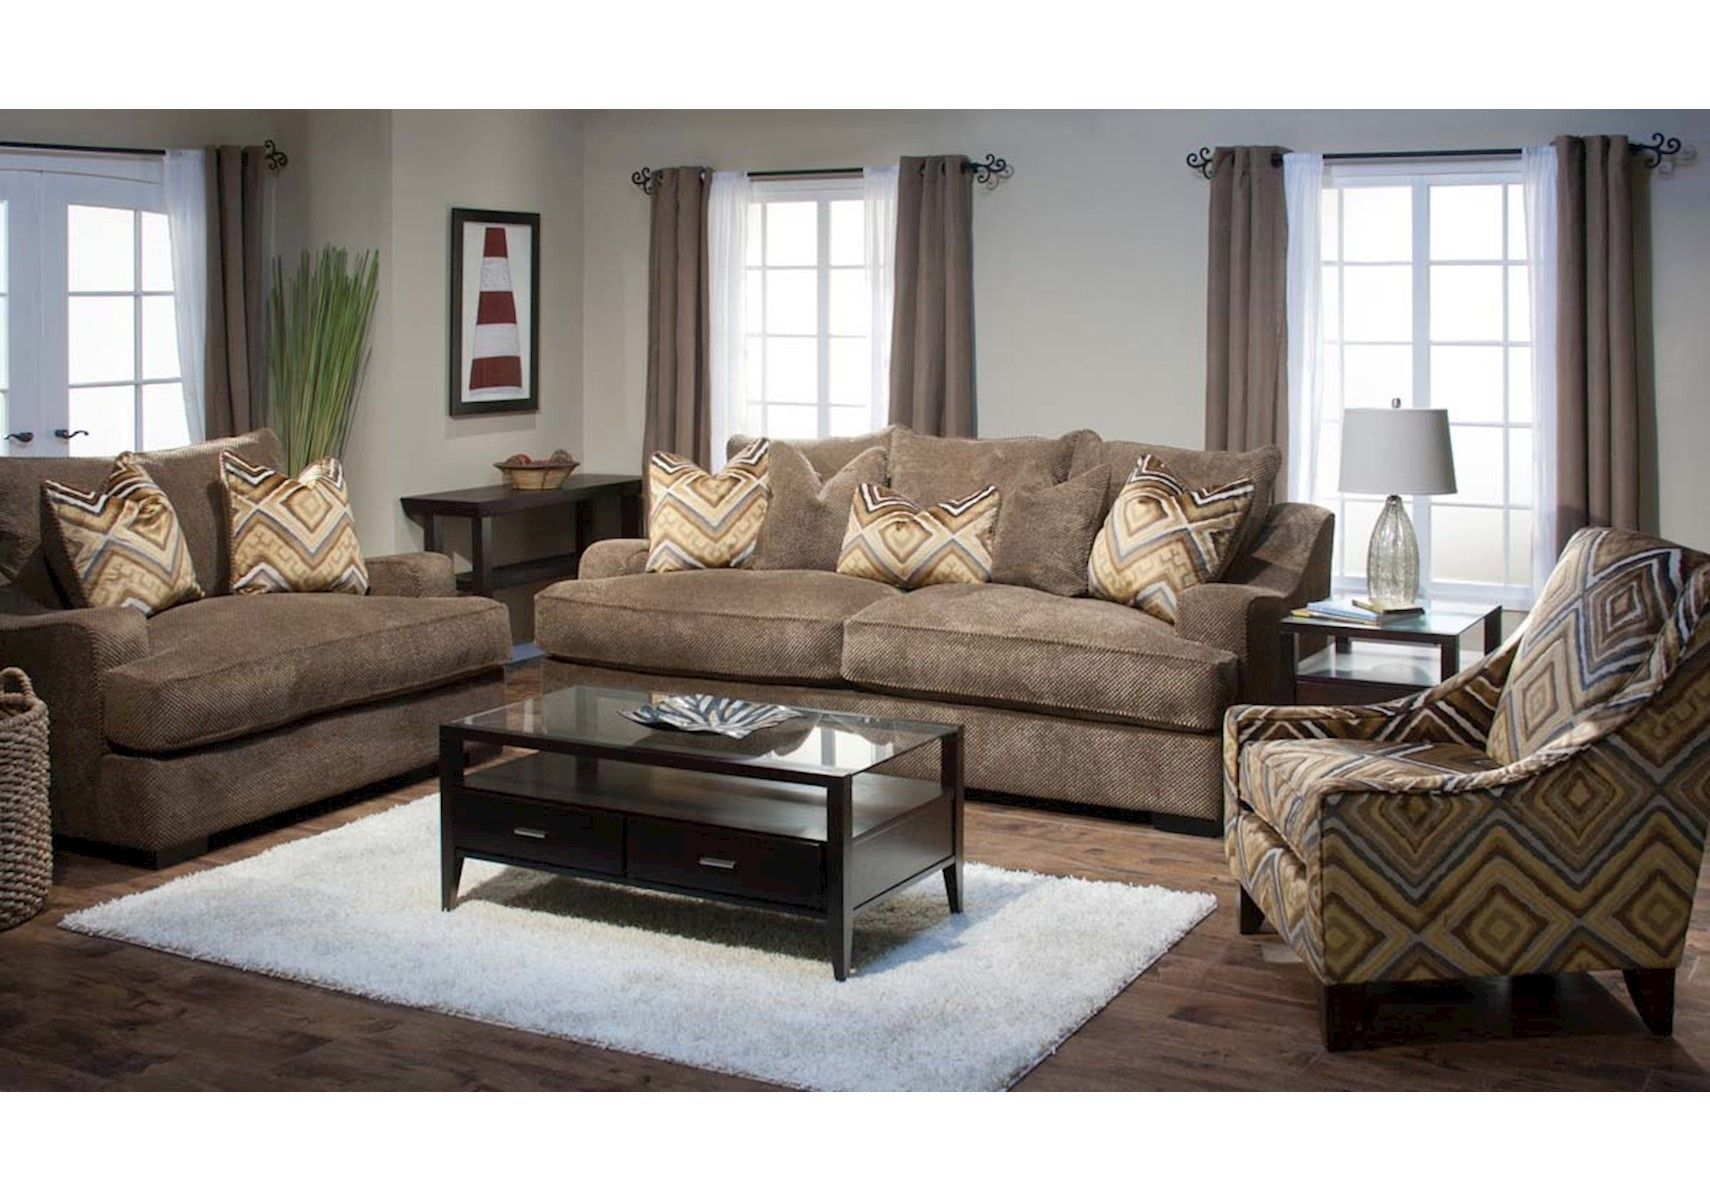 Lacks Stacia 2 Pc Living Room Set